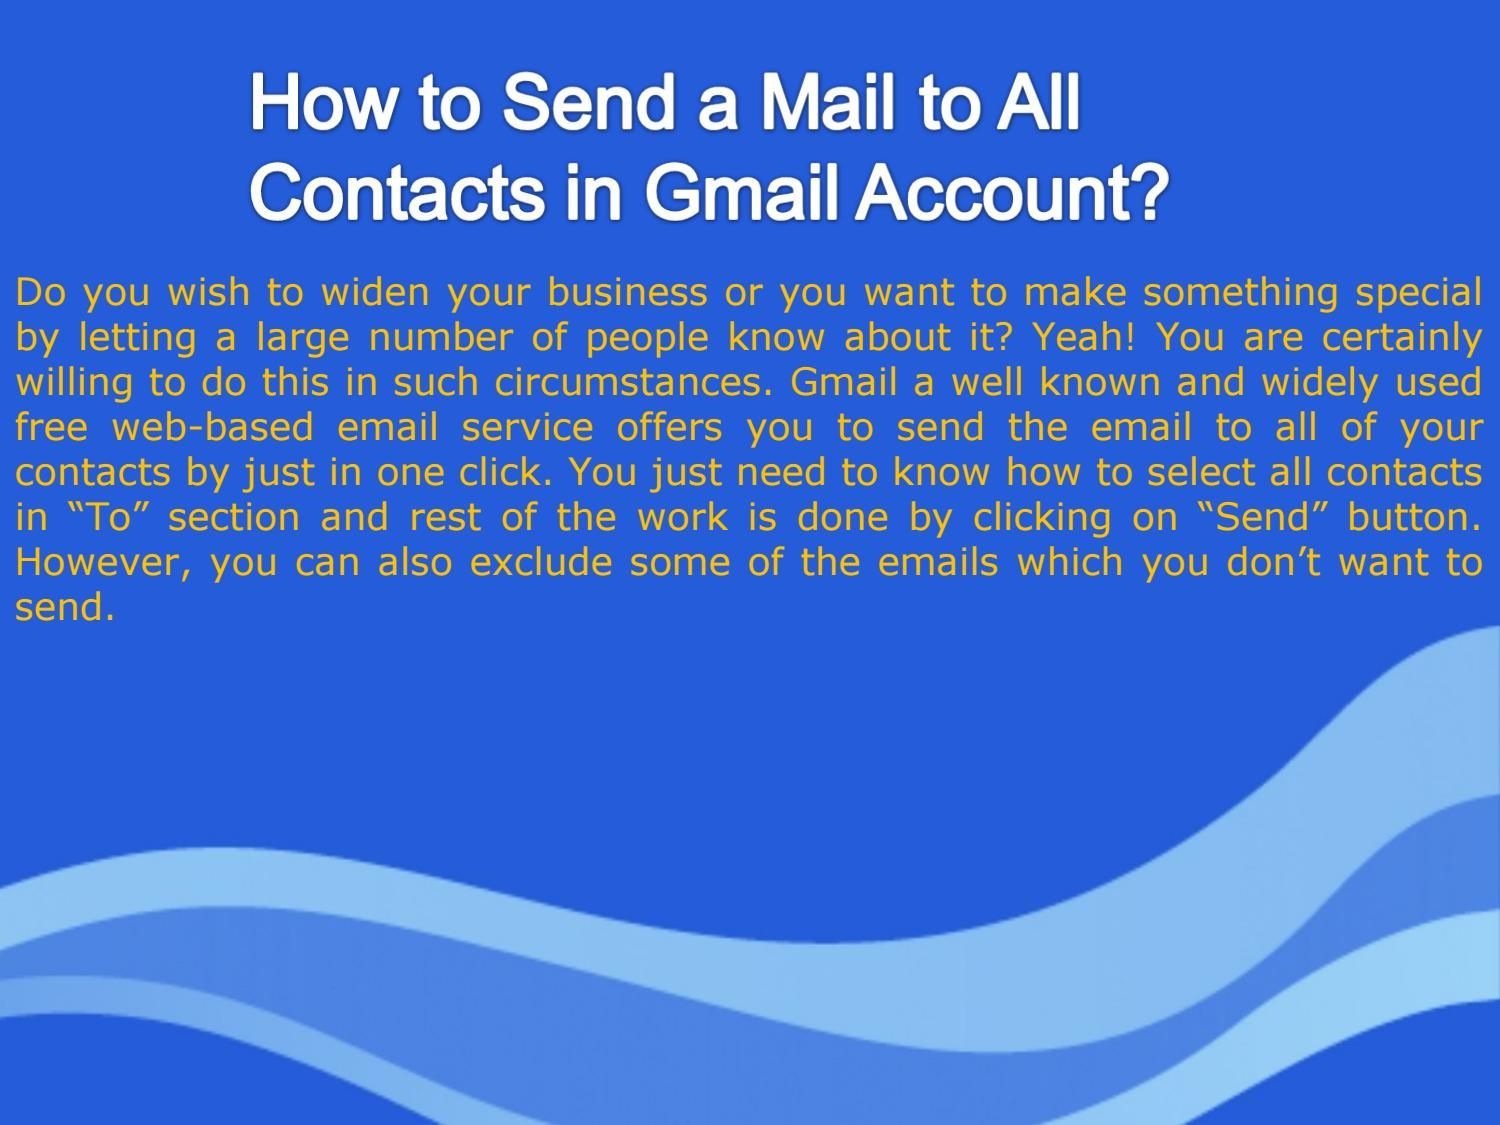 How to Send a Mail to All Contacts in Gmail Account